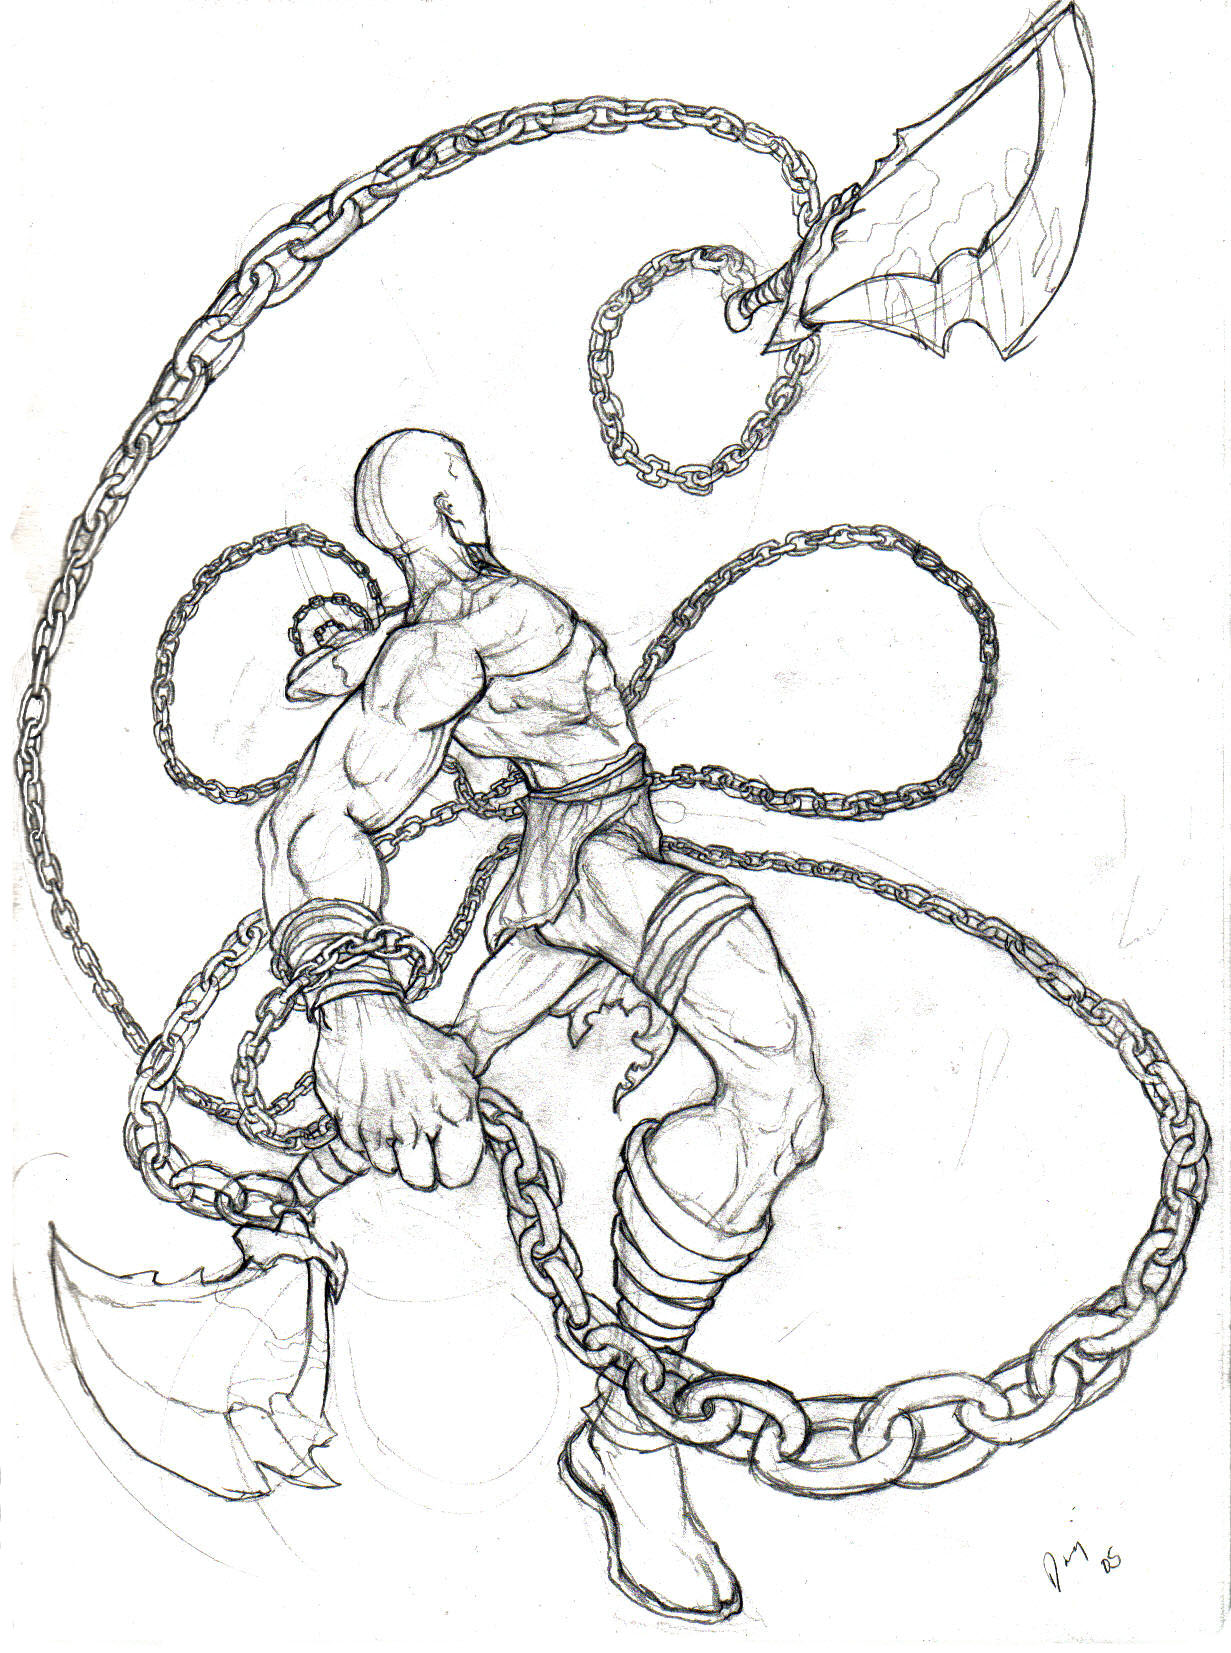 Kratos Lineart By Liquidsmooth On Deviantart